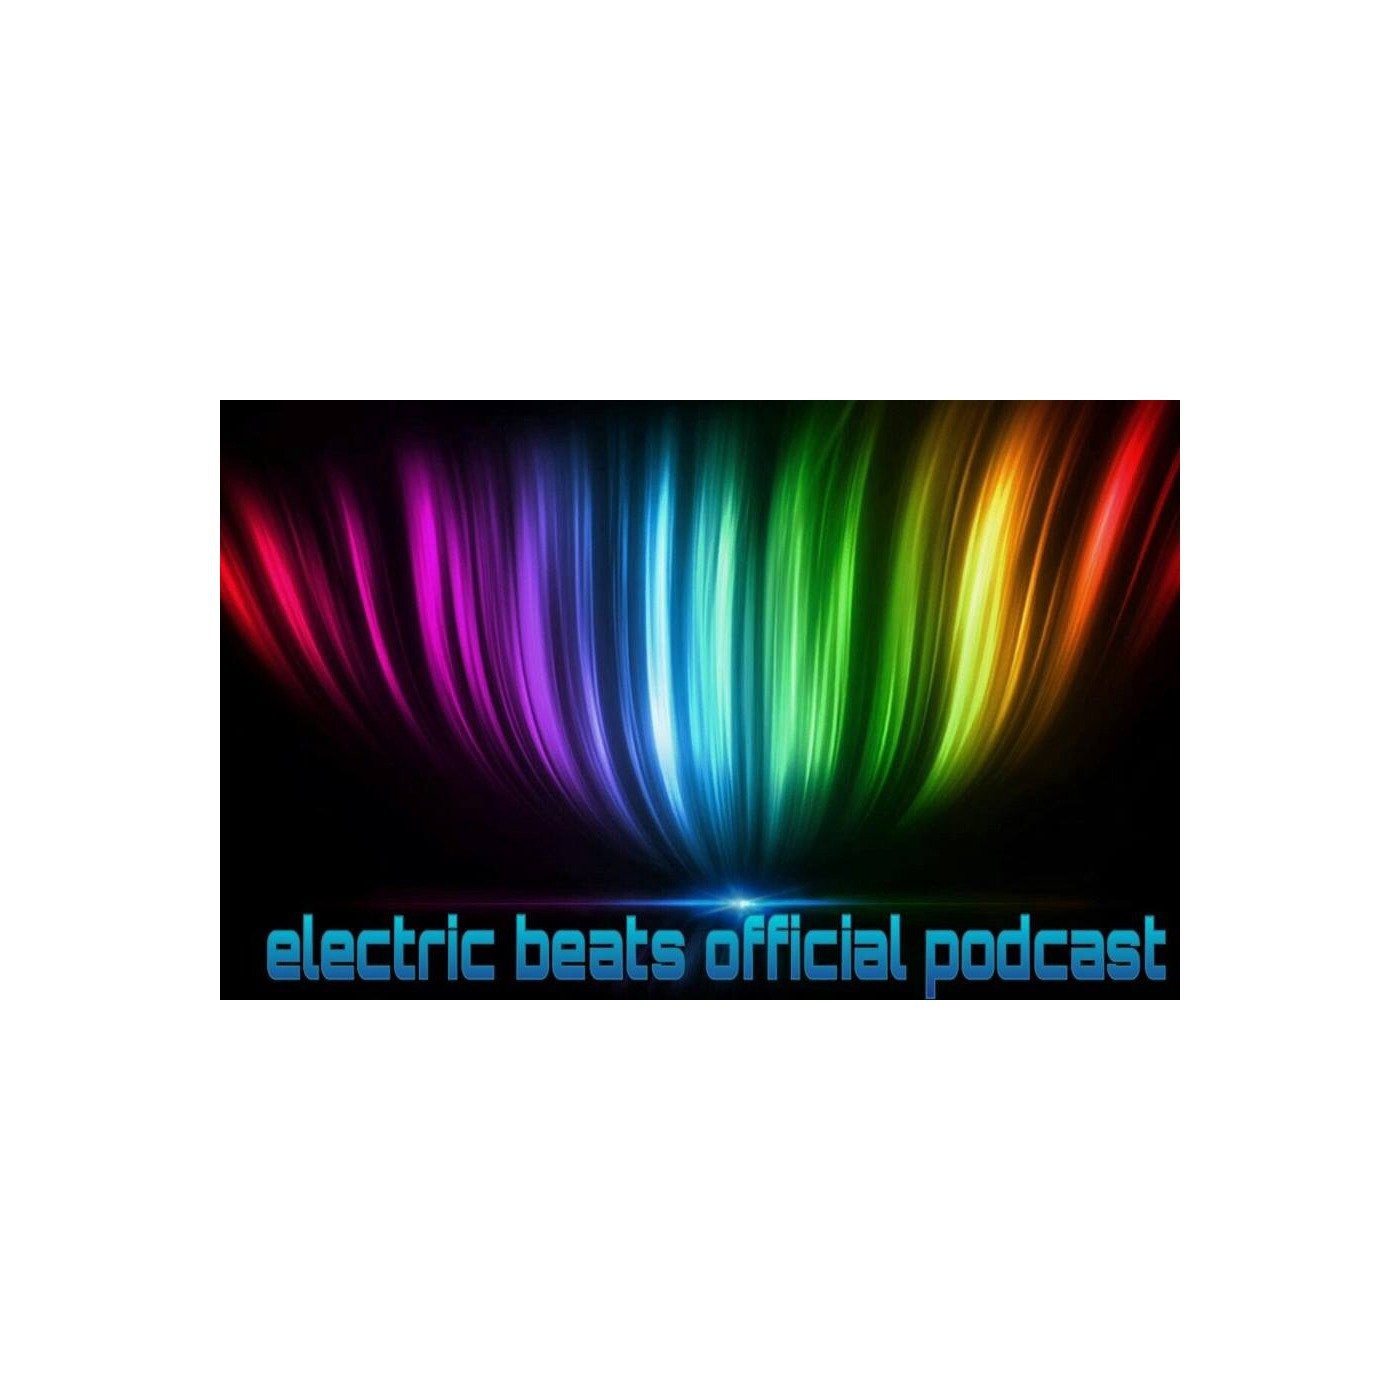 electric beats official podcast